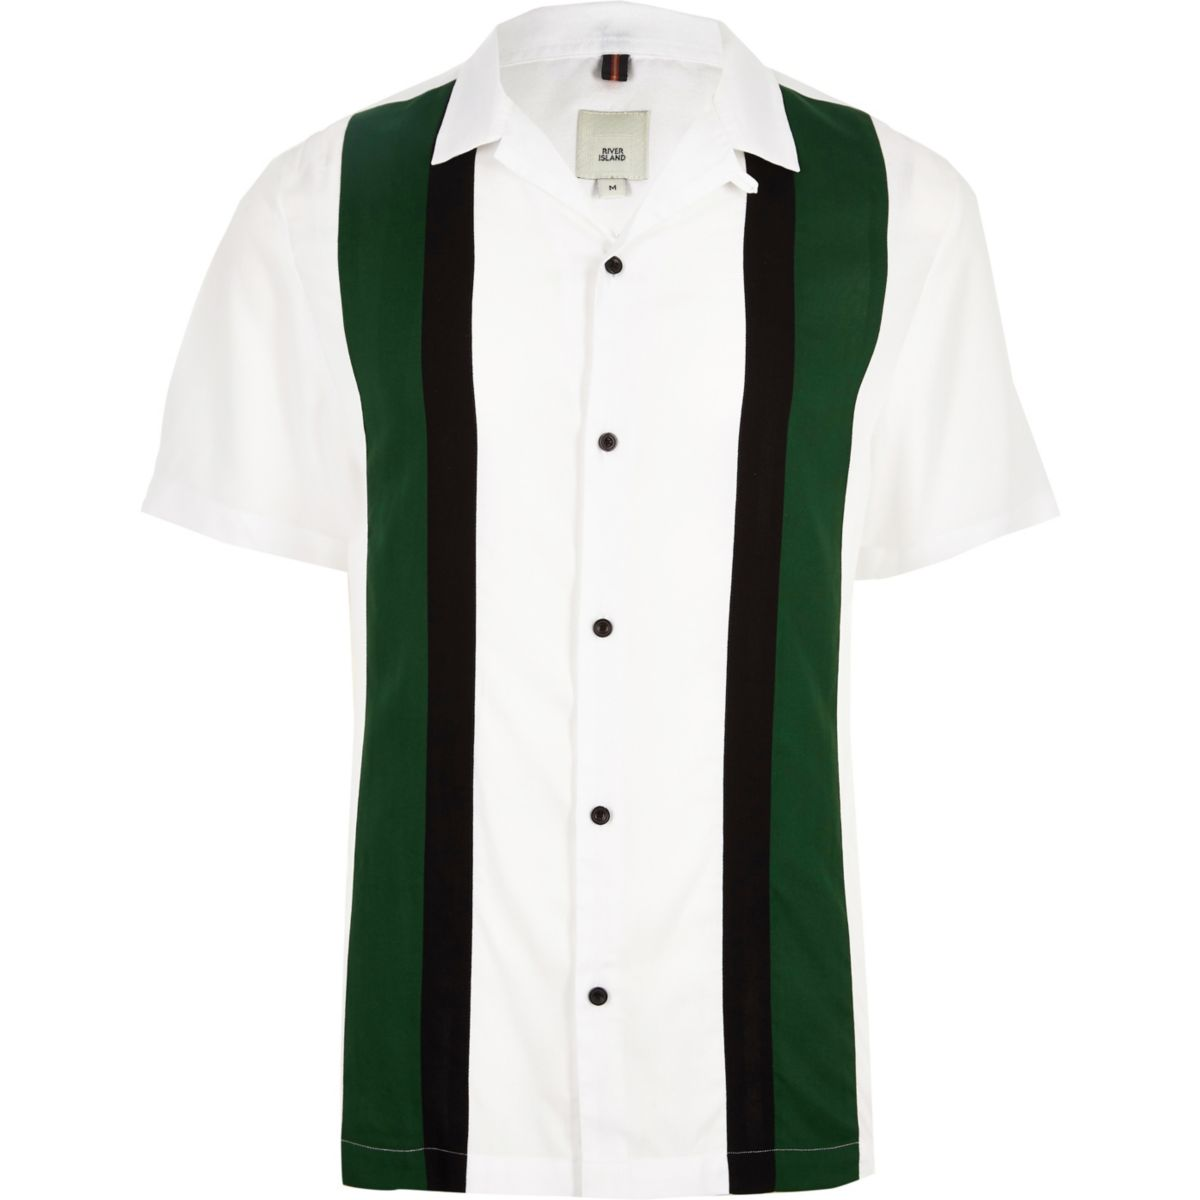 White short sleeve color block shirt